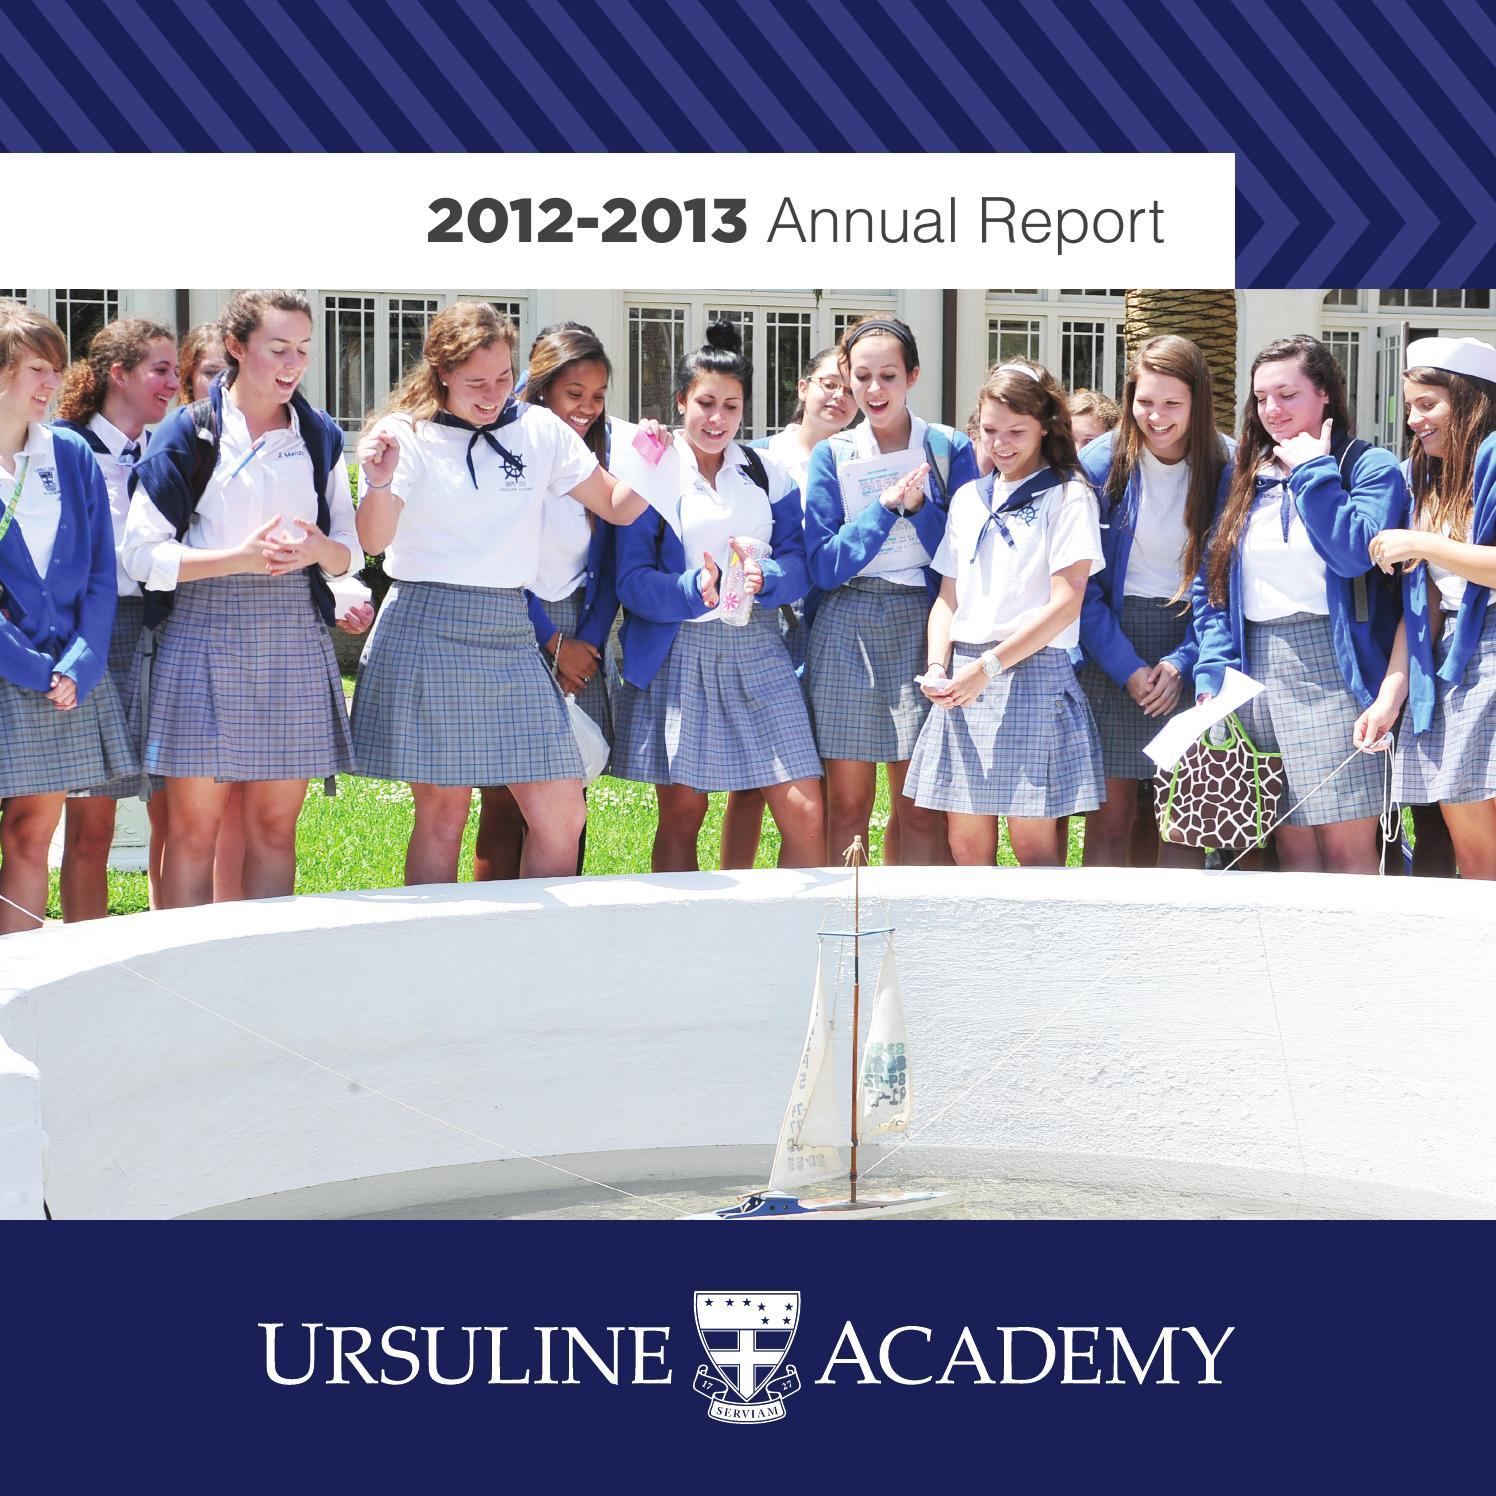 annual report by ursuline academy of new orleans issuu 2012 2013 ursuline academy of new orleans annual report